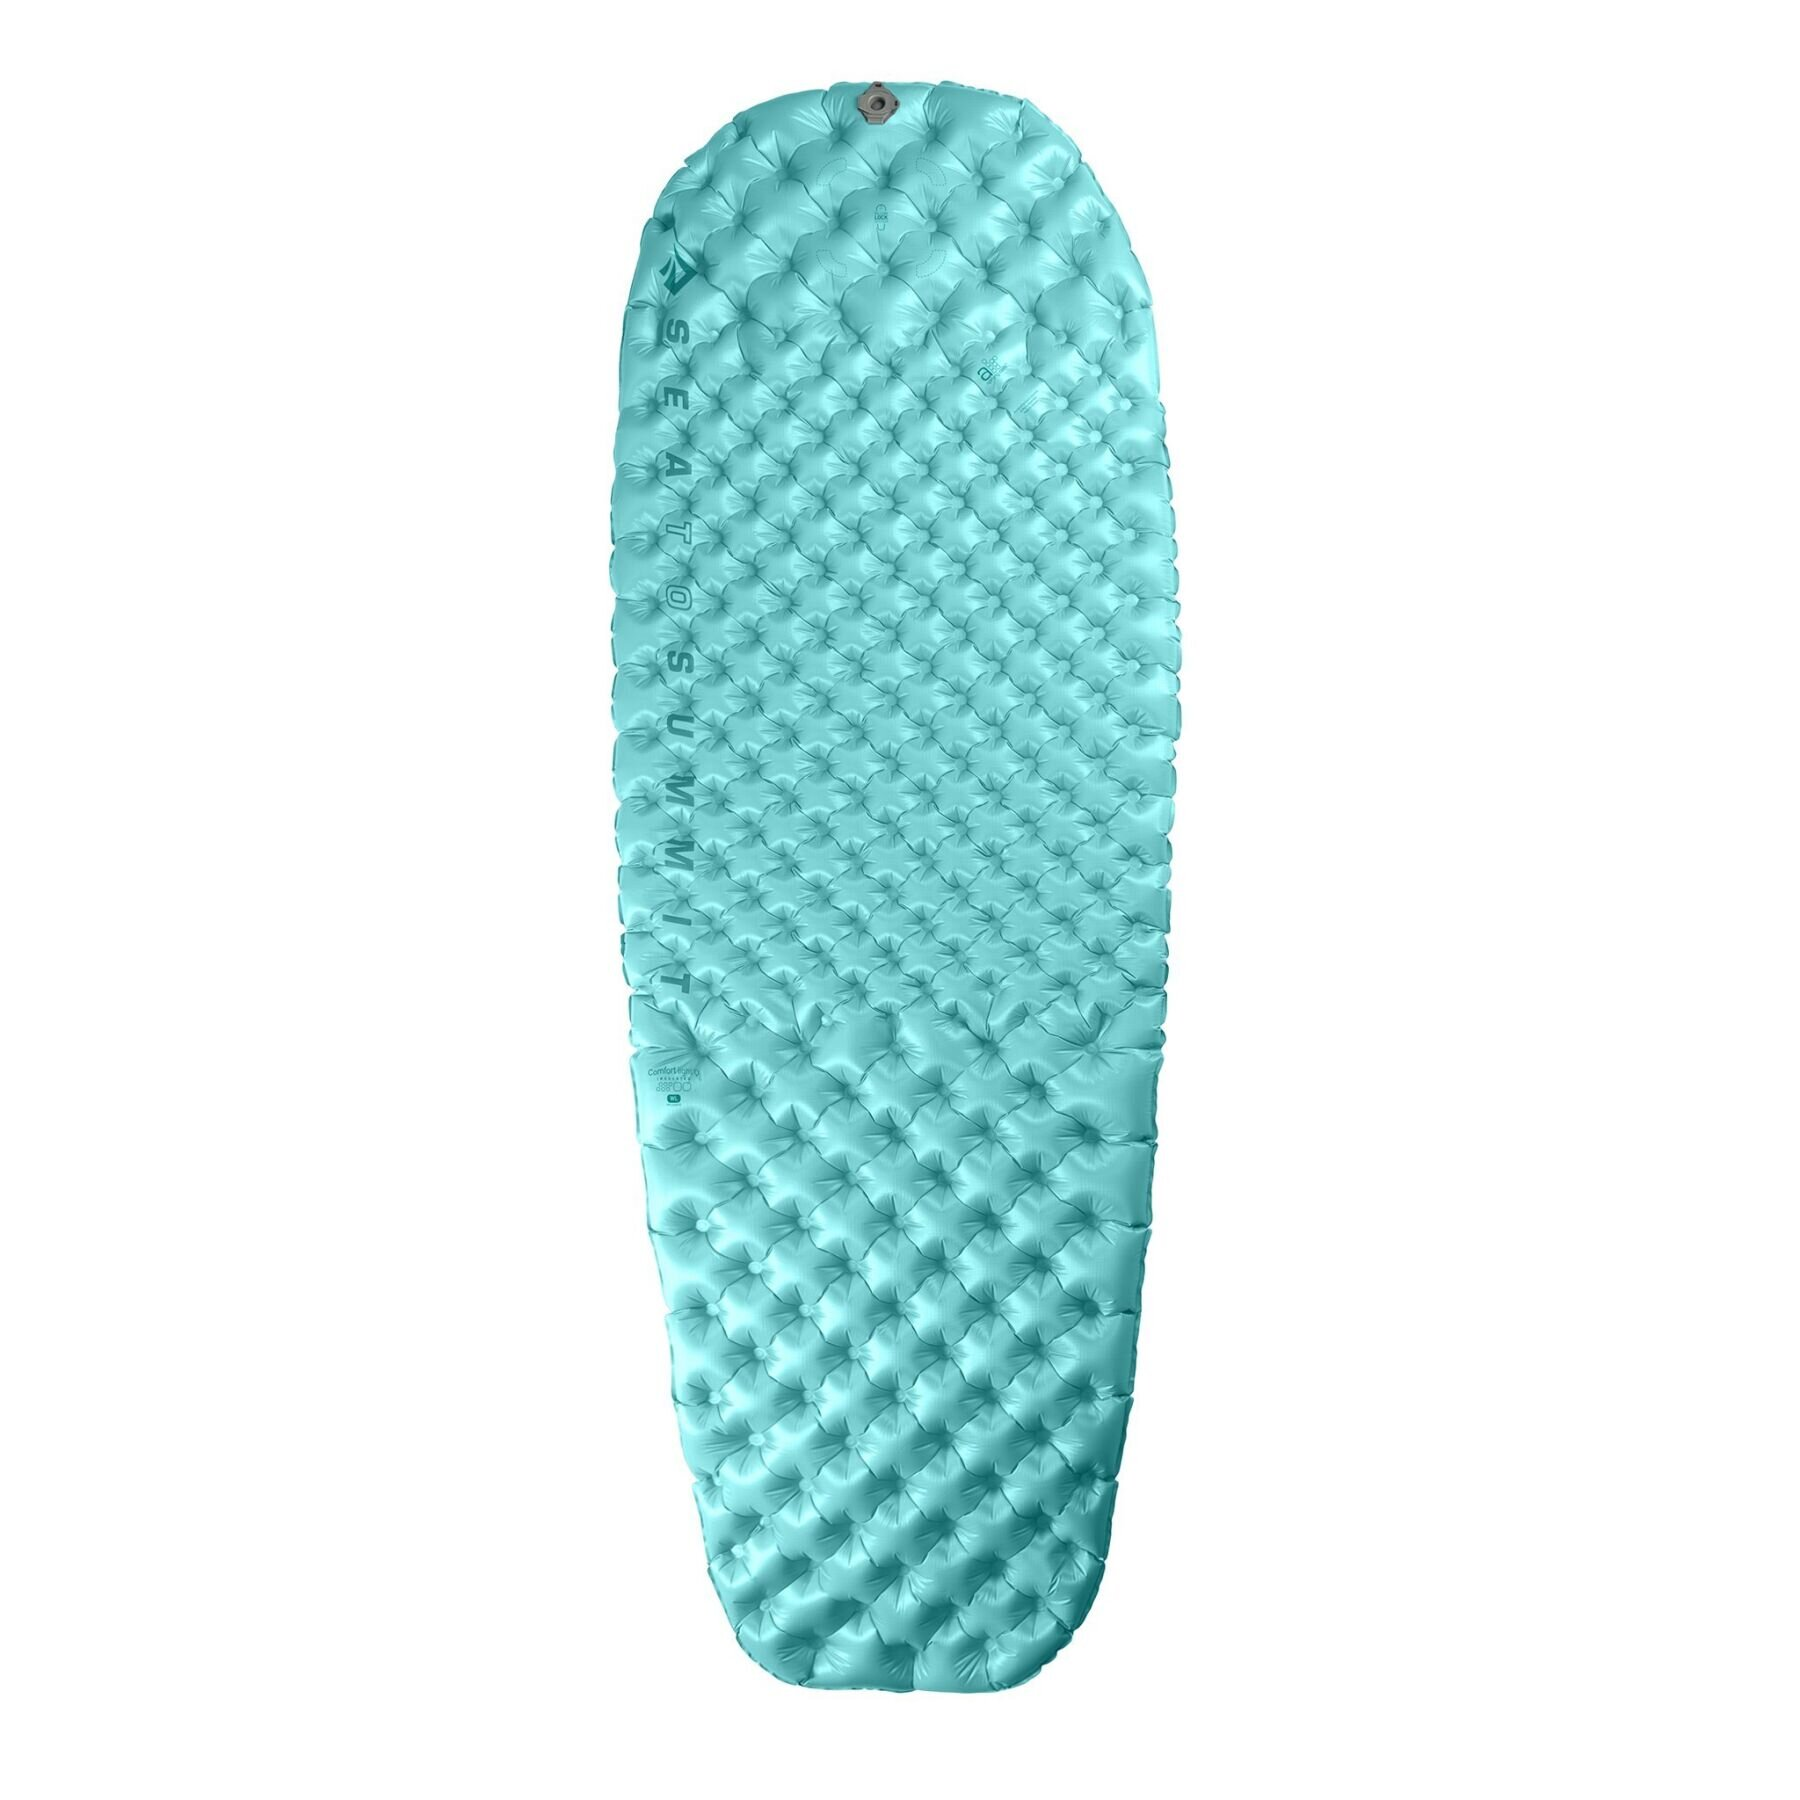 Надувний килимок Sea To Summit - Air Sprung Comfort Light Insulated Mat women's Light Blue, 168 см х 55 см х 6.3 см (STS AMCLINSWRAS)